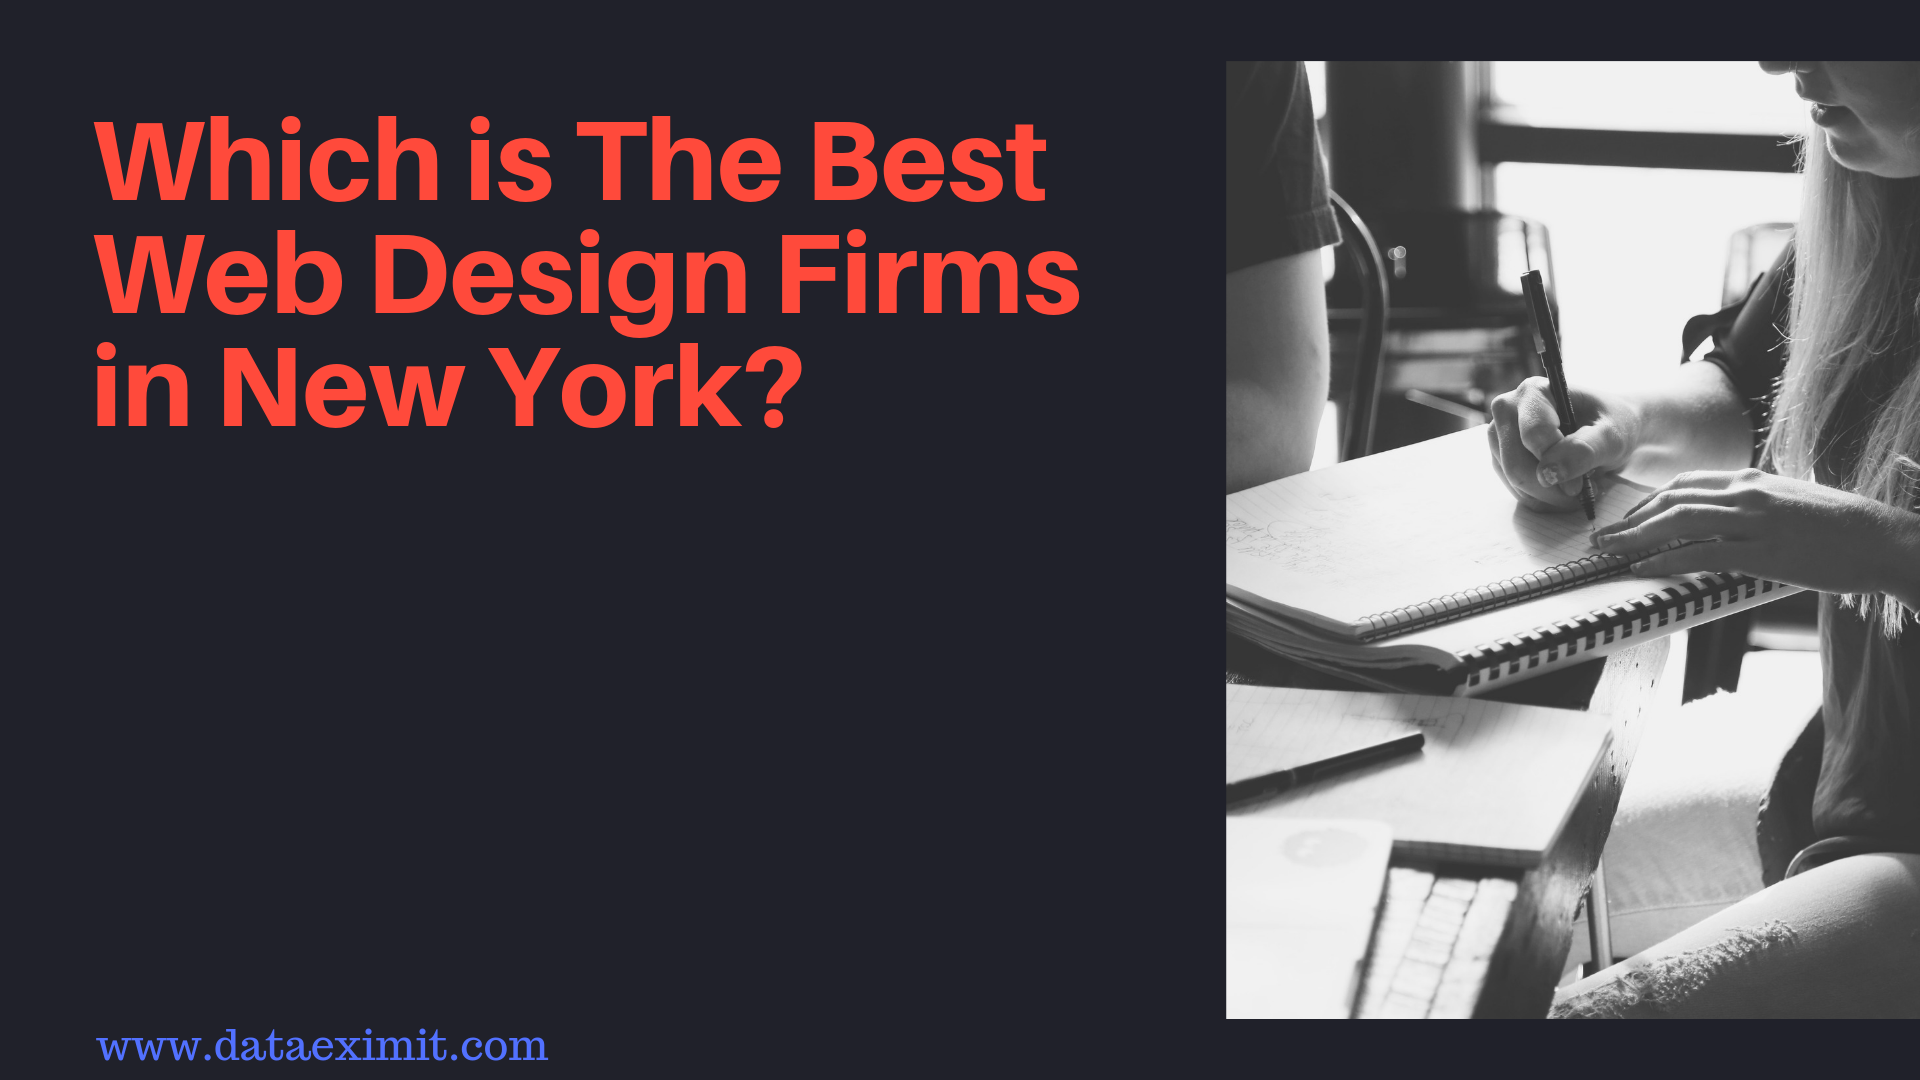 What are the best web design firms in New York? - Quora